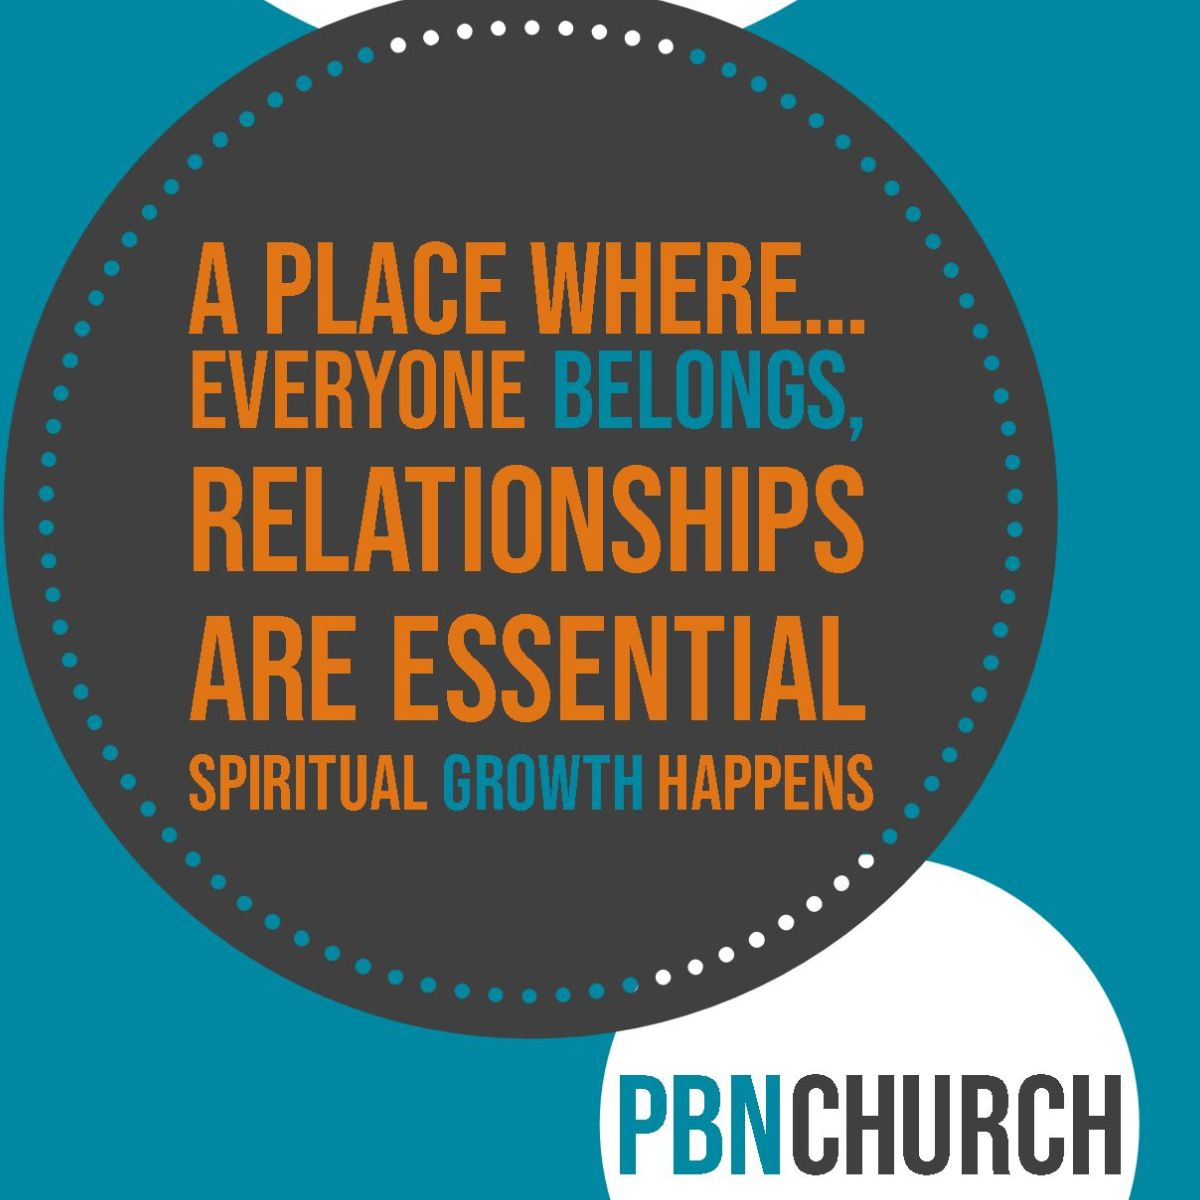 A place where everyone belongs, relationships are essential and spiritual growth happens